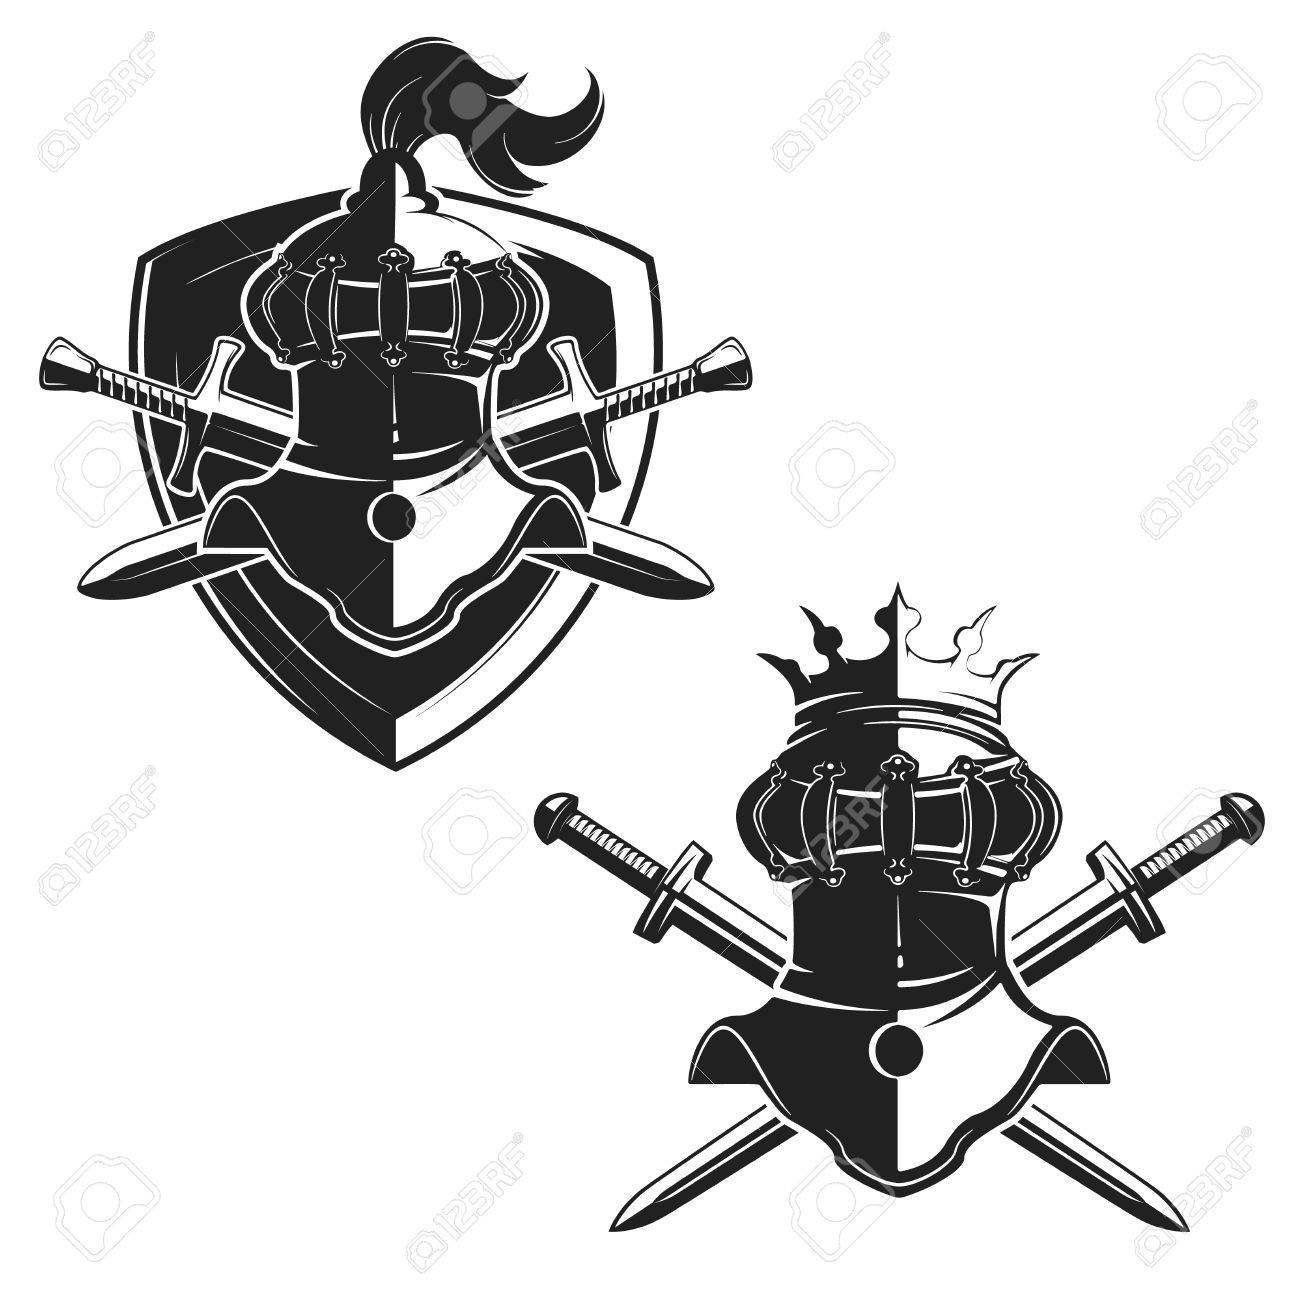 set of the emblems templates with swords and knights helmets